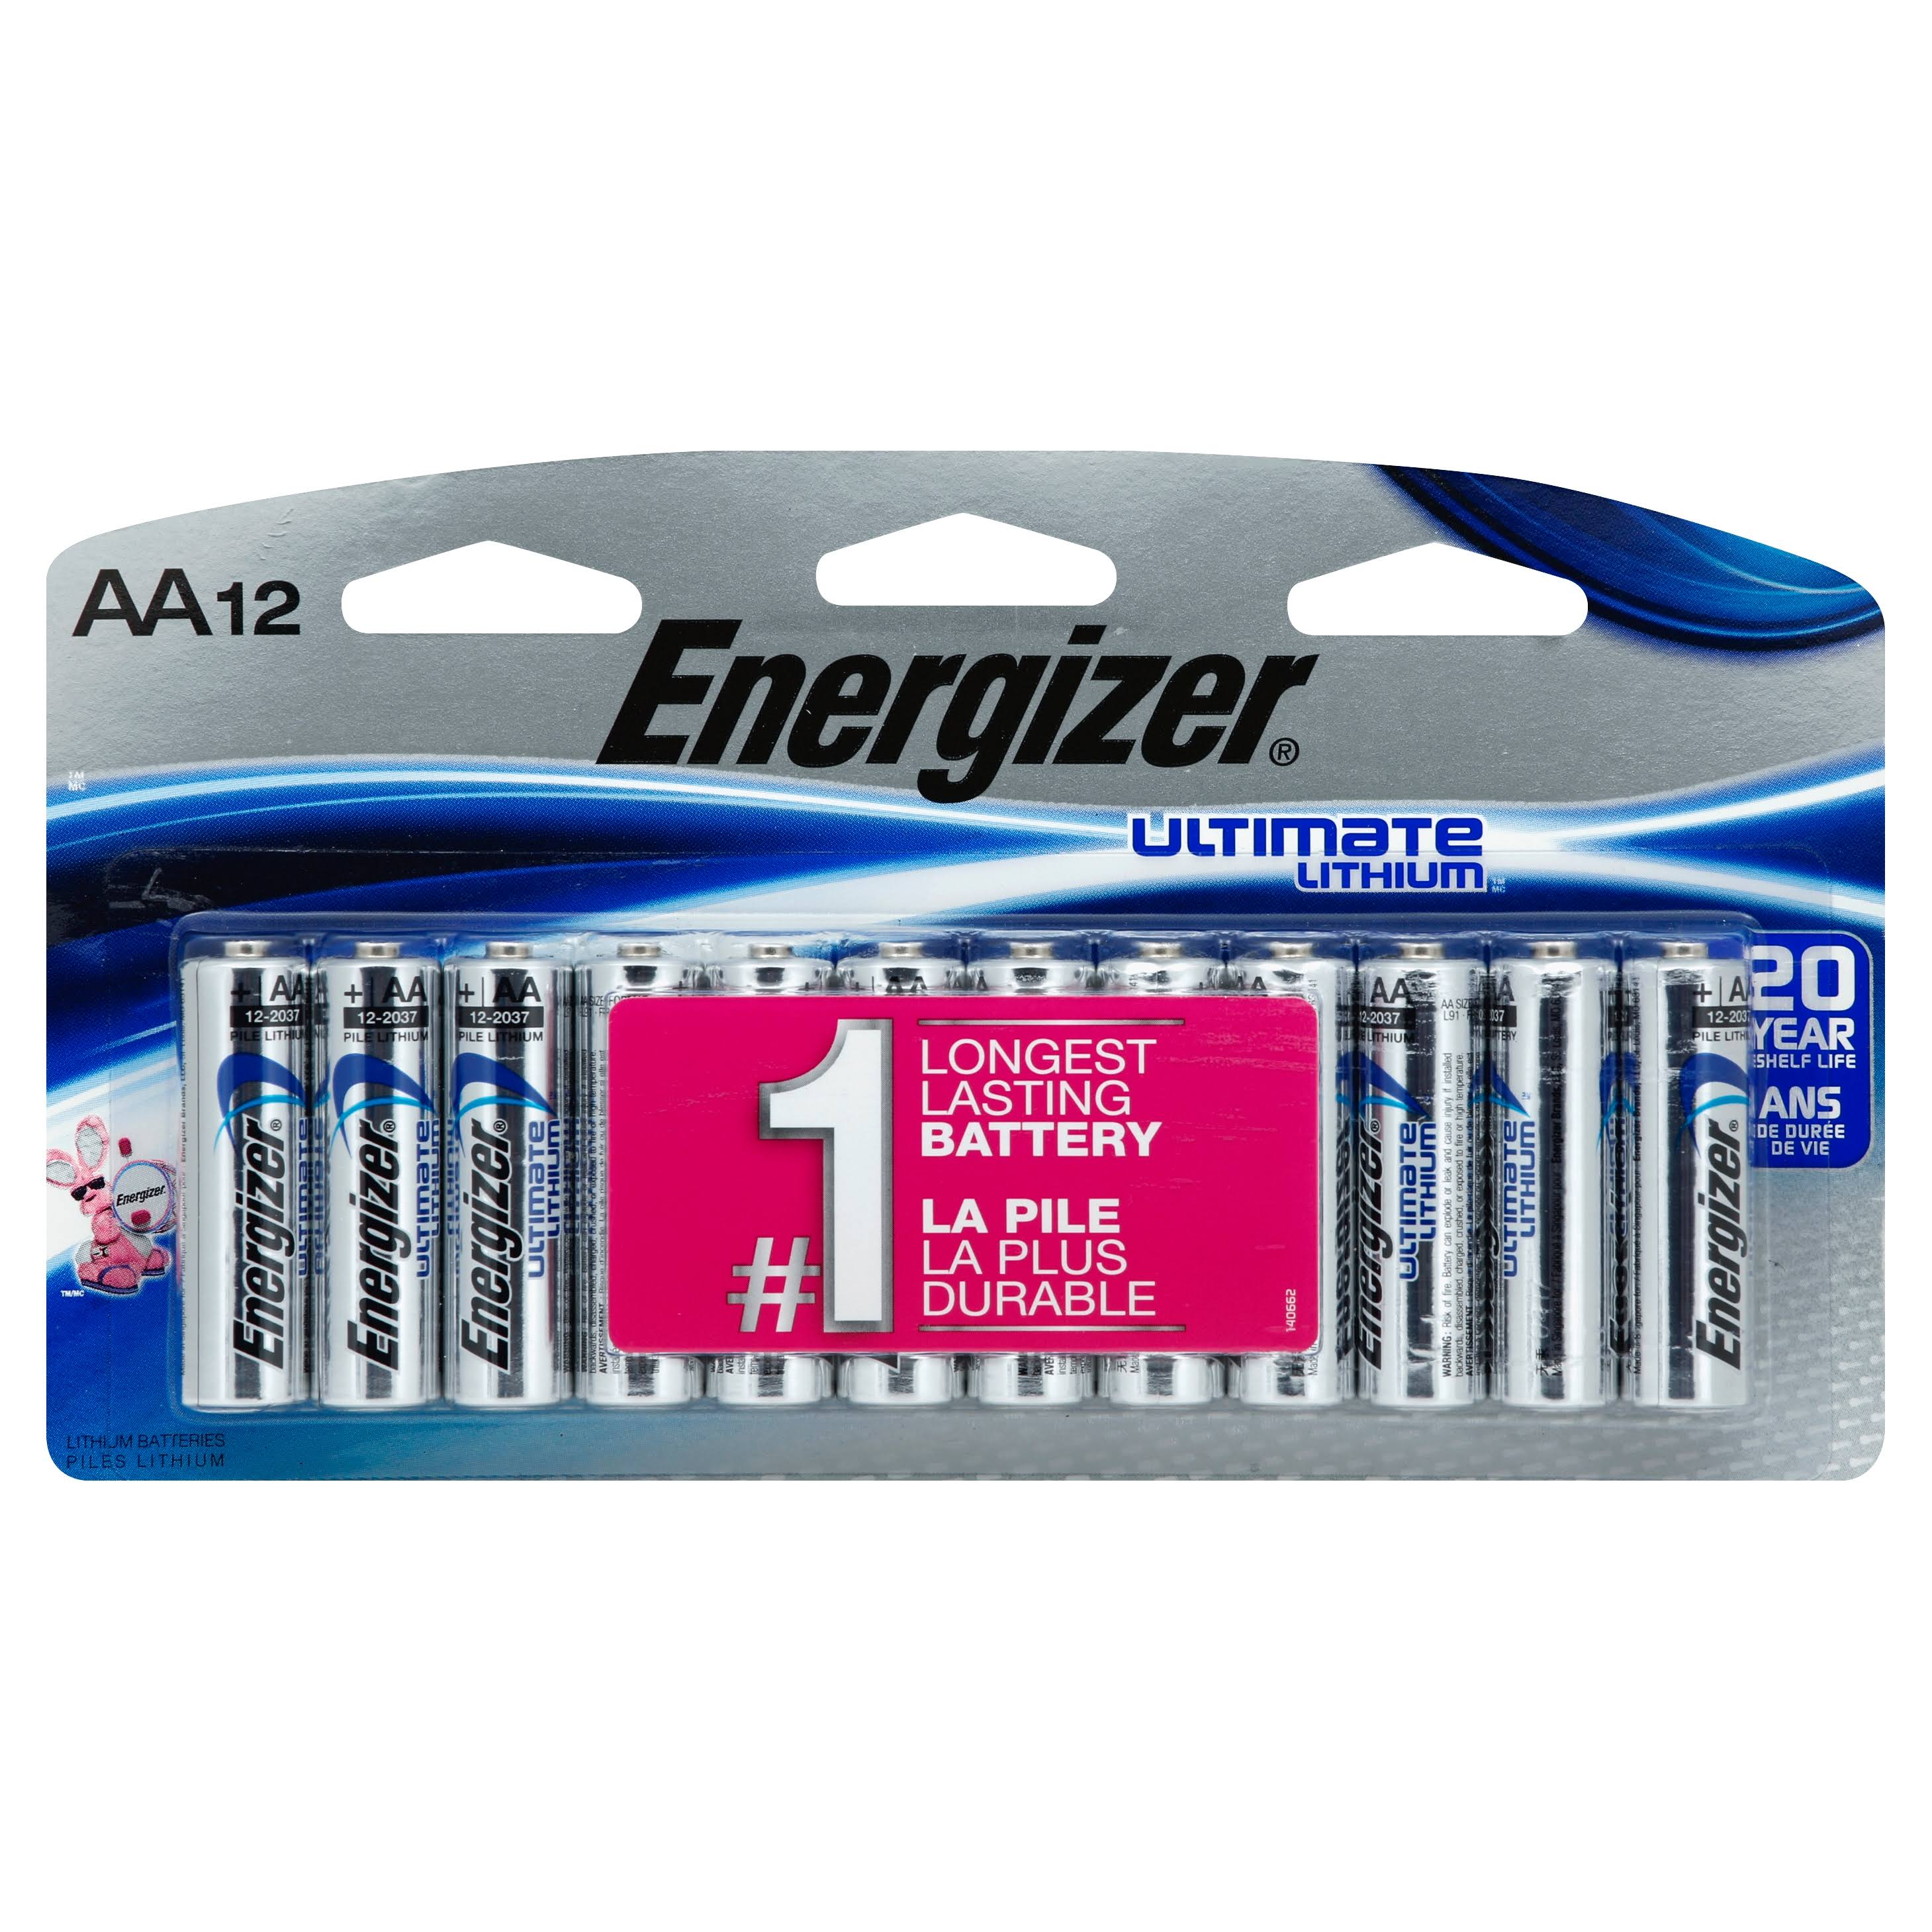 Energizer L91SBP-12 Ultimate Universal Battery - 12pk, Lithium AA